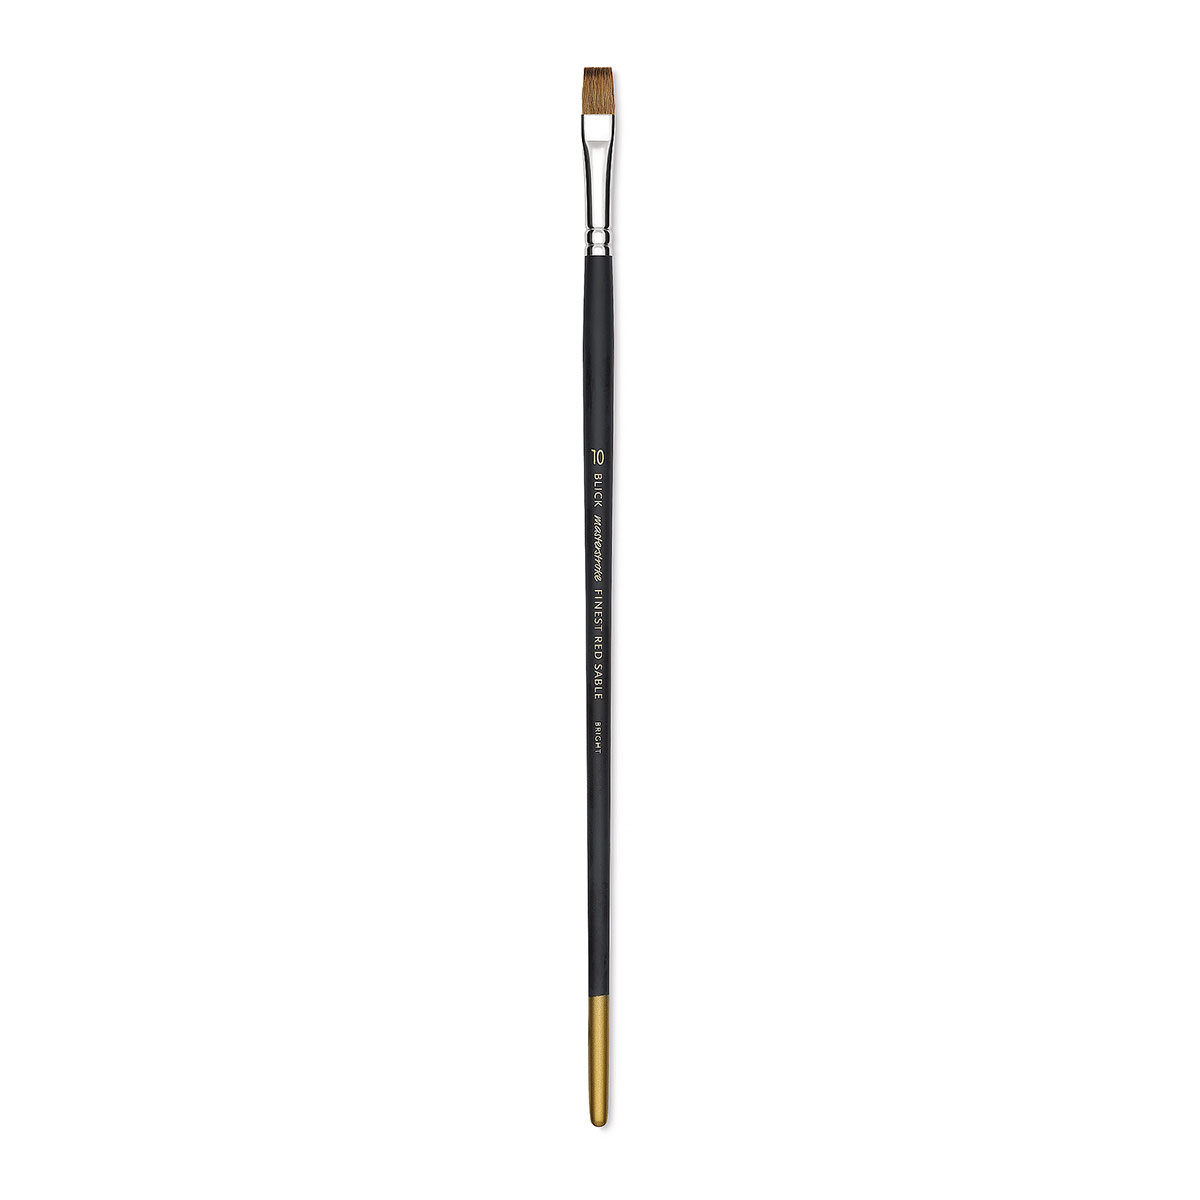 Blick Masterstroke Finest Red Sable Brush - Bright, Size 10, Long Handle